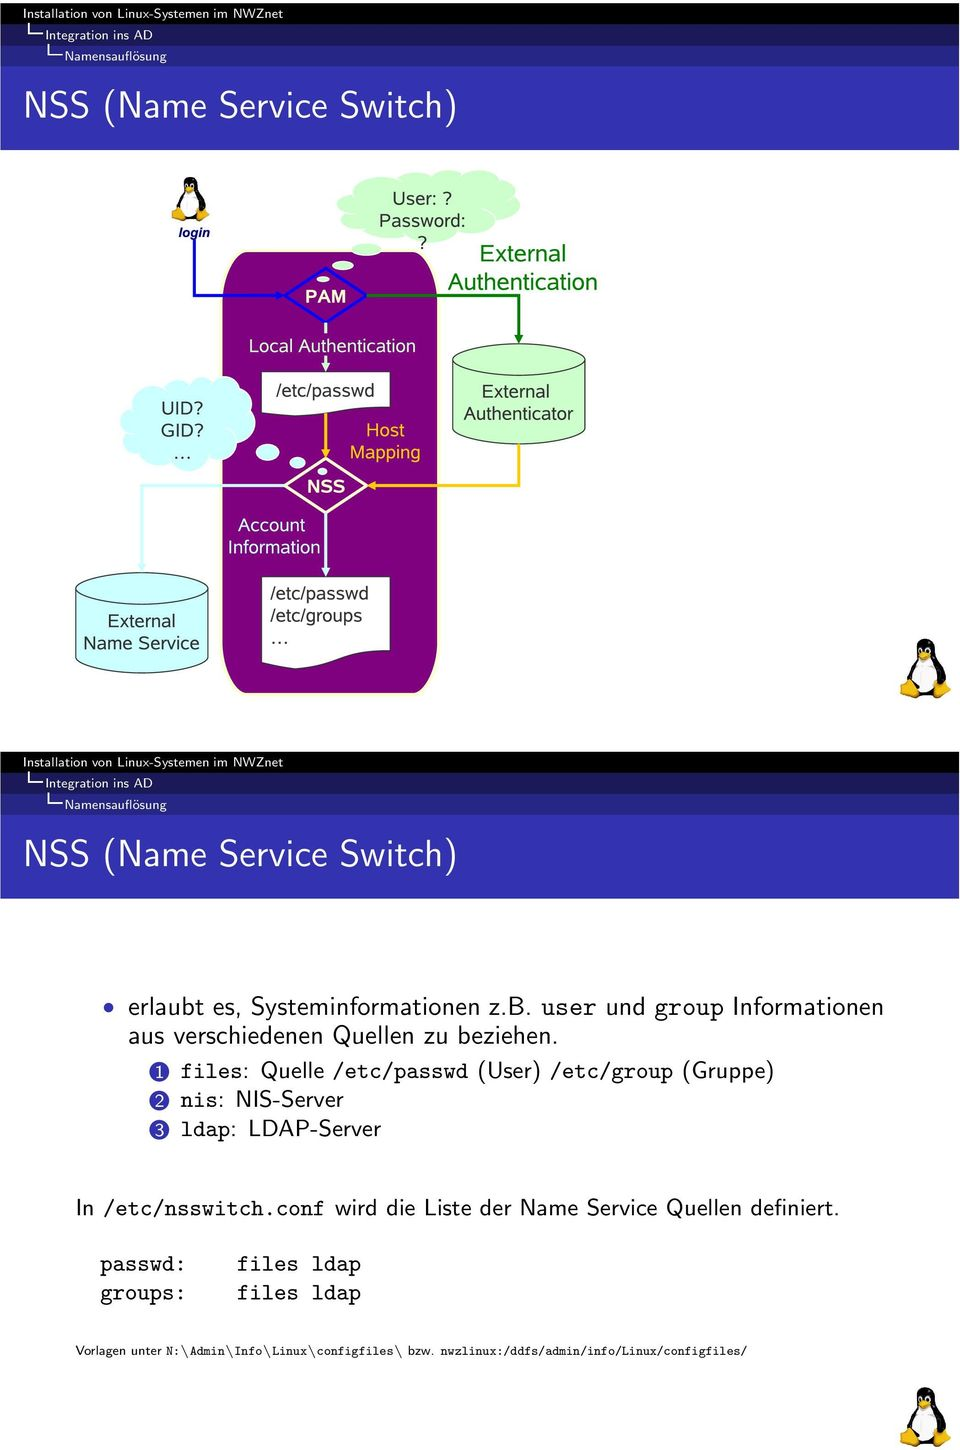 1 files: Quelle /etc/passwd (User) /etc/group (Gruppe) 2 nis: NIS-Server 3 ldap: LDAP-Server In /etc/nsswitch.